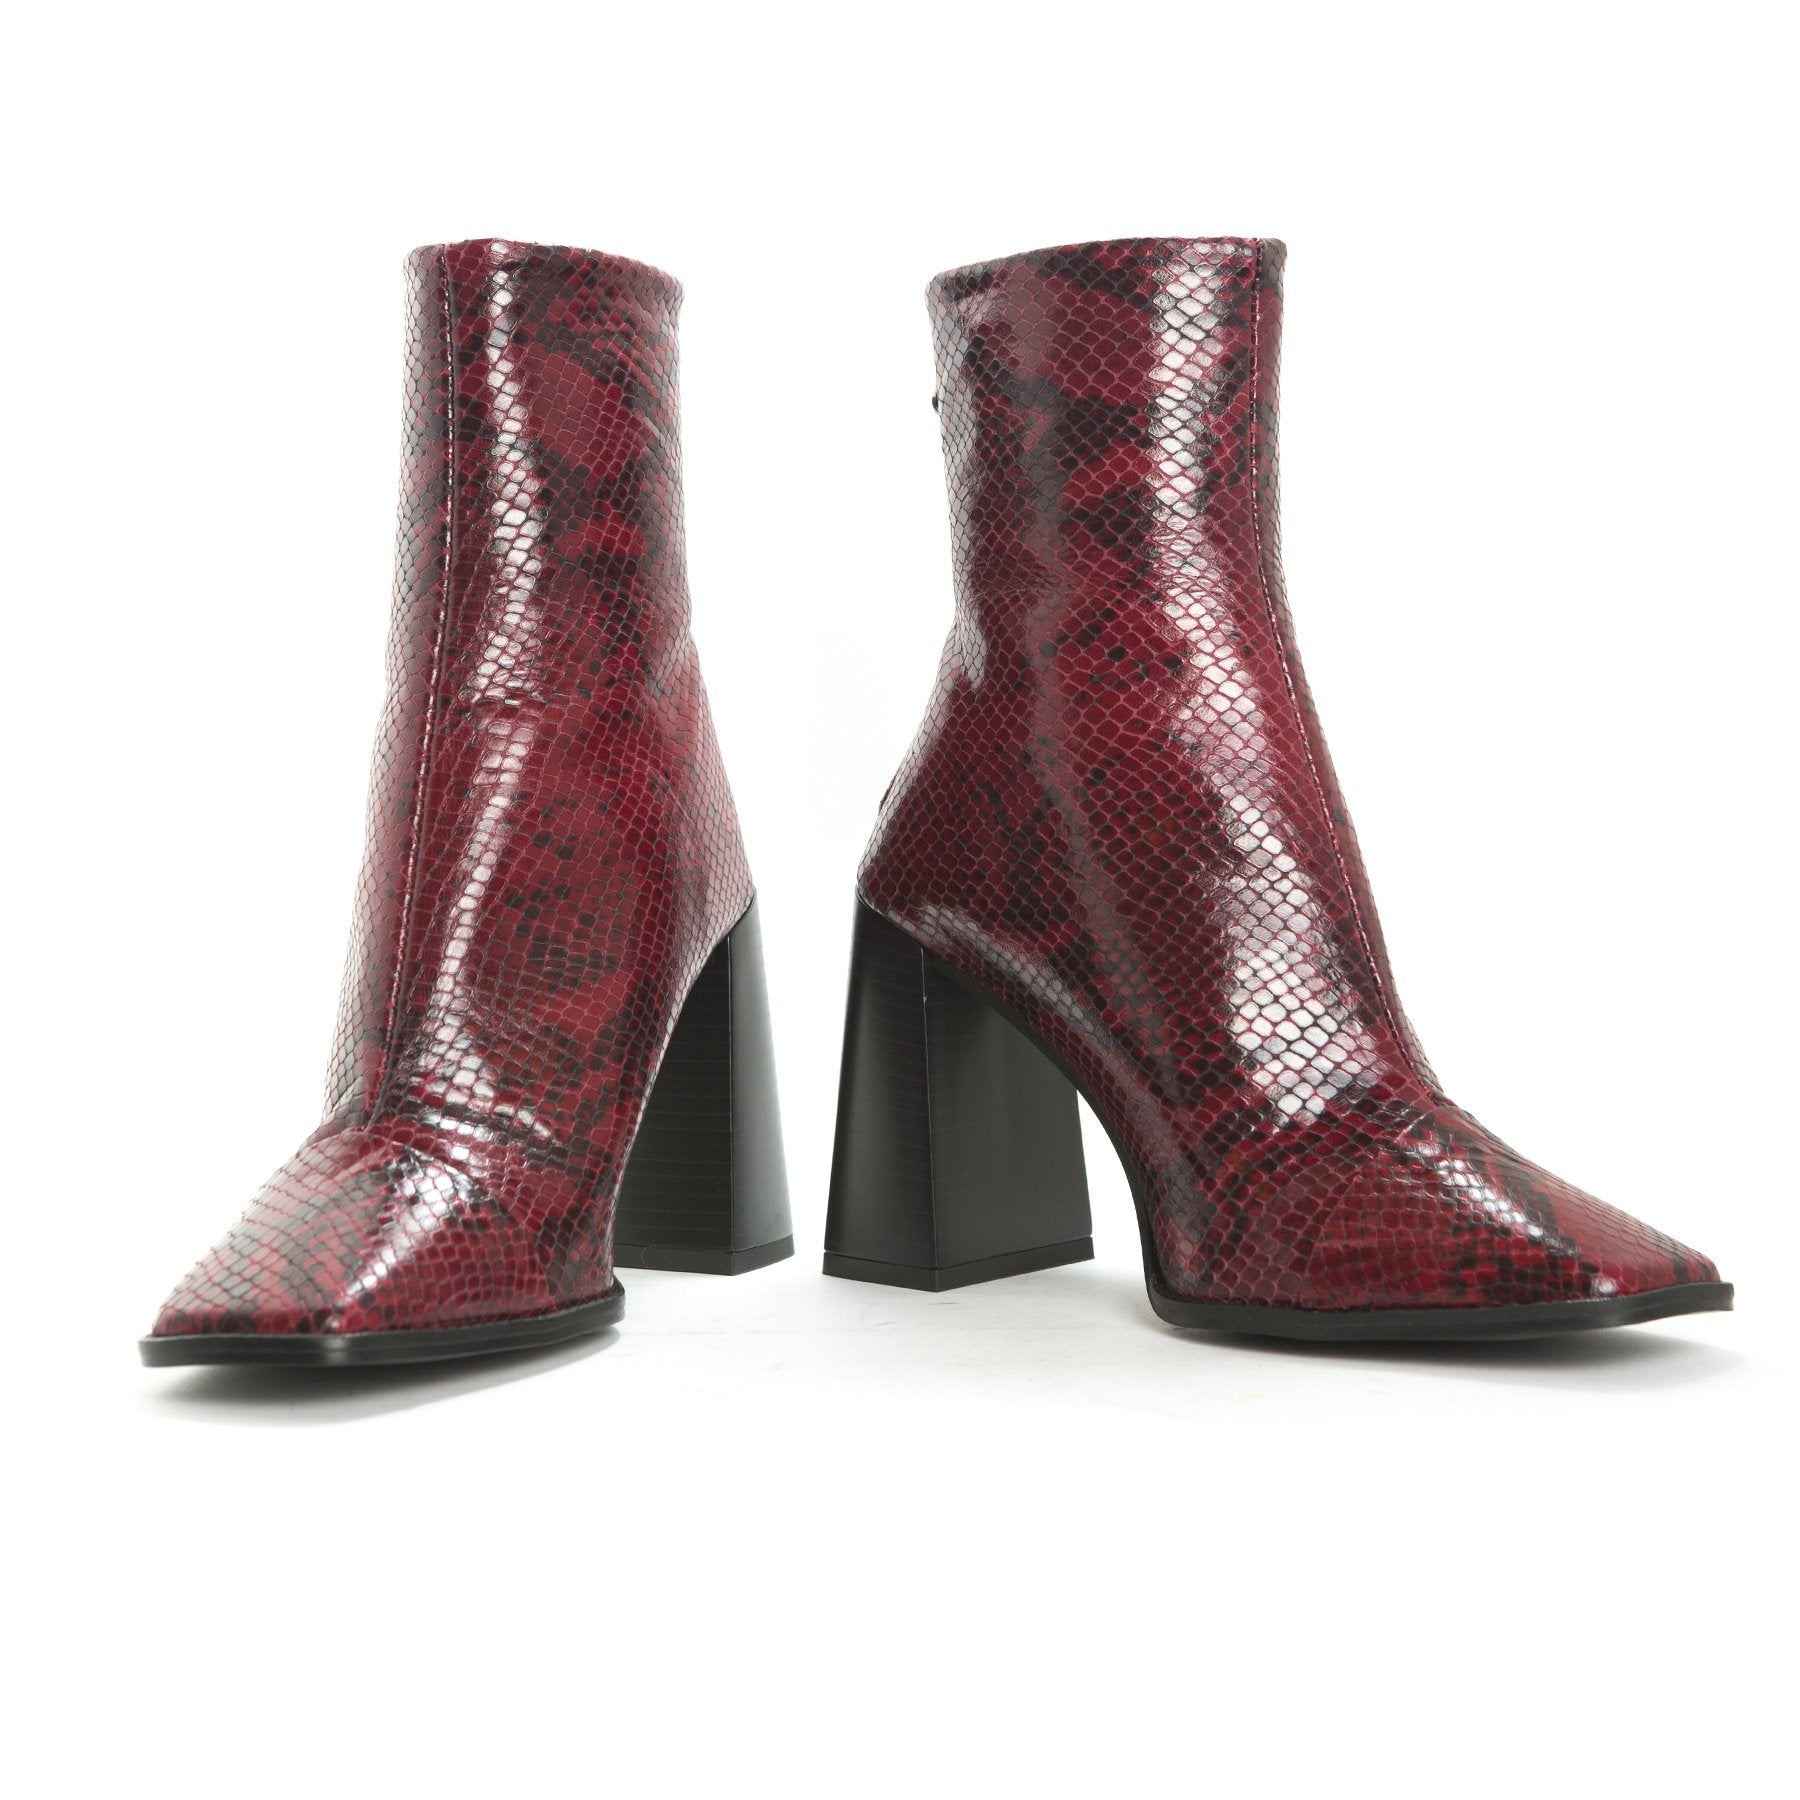 Sorrento Red Snake Leather